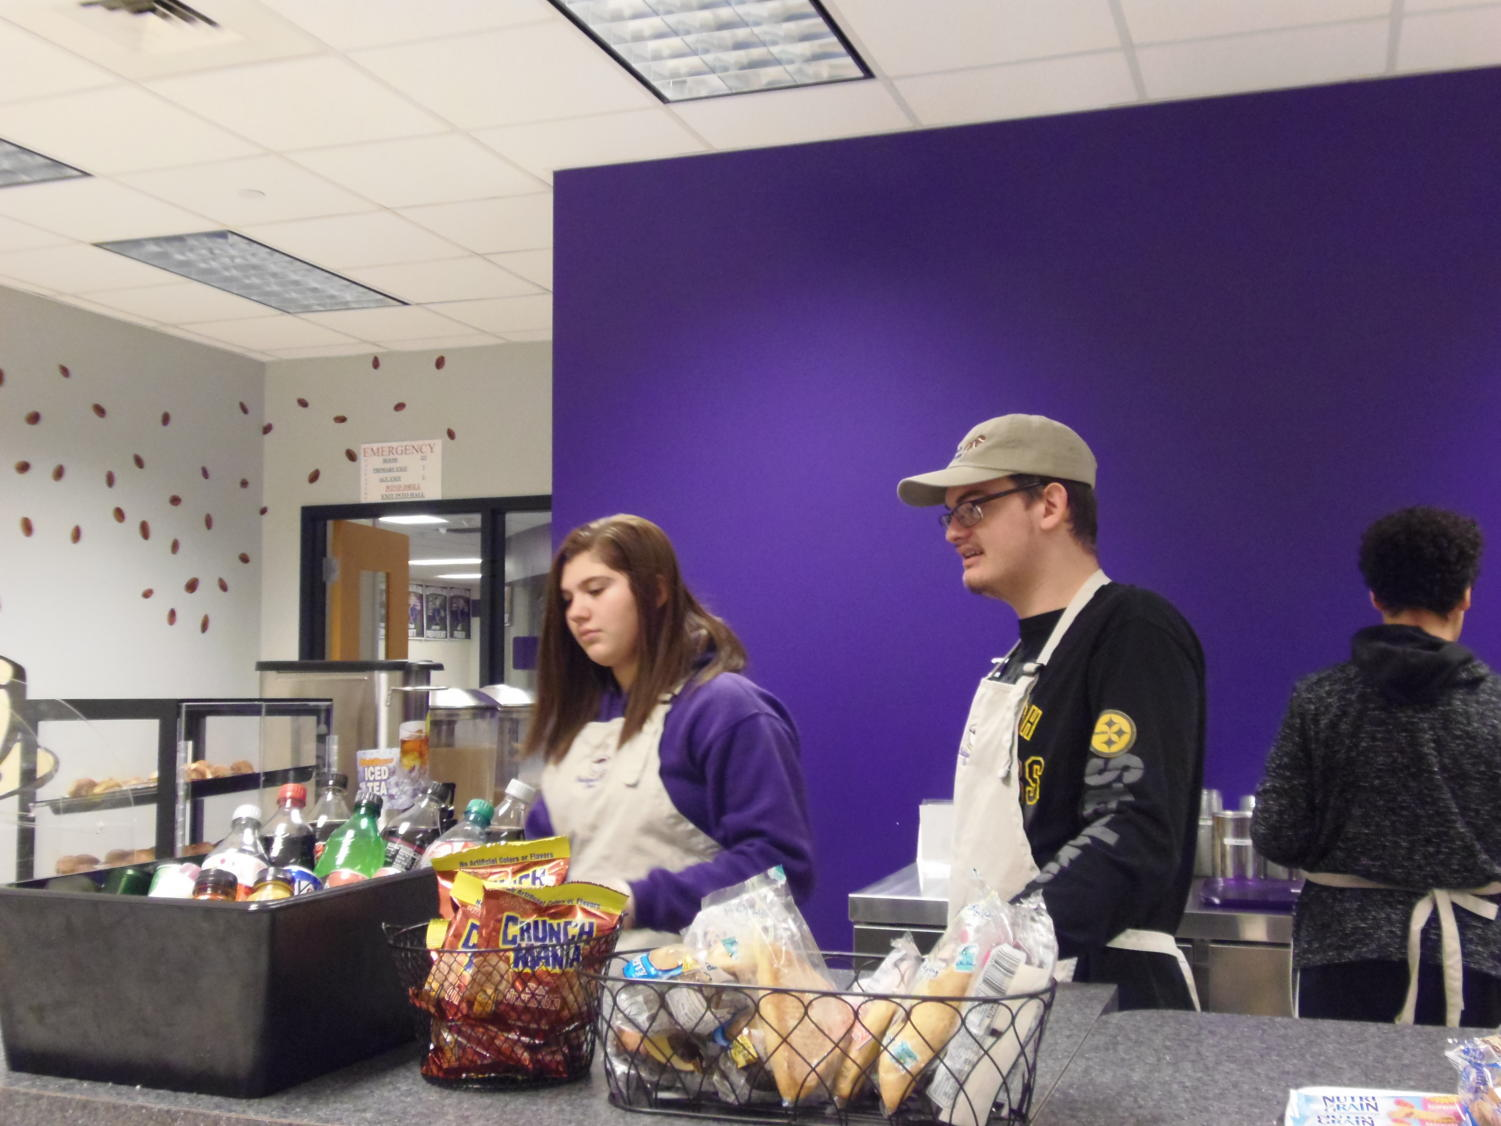 The Baldwin Bean, the school's new coffee shop, had its grand opening today.